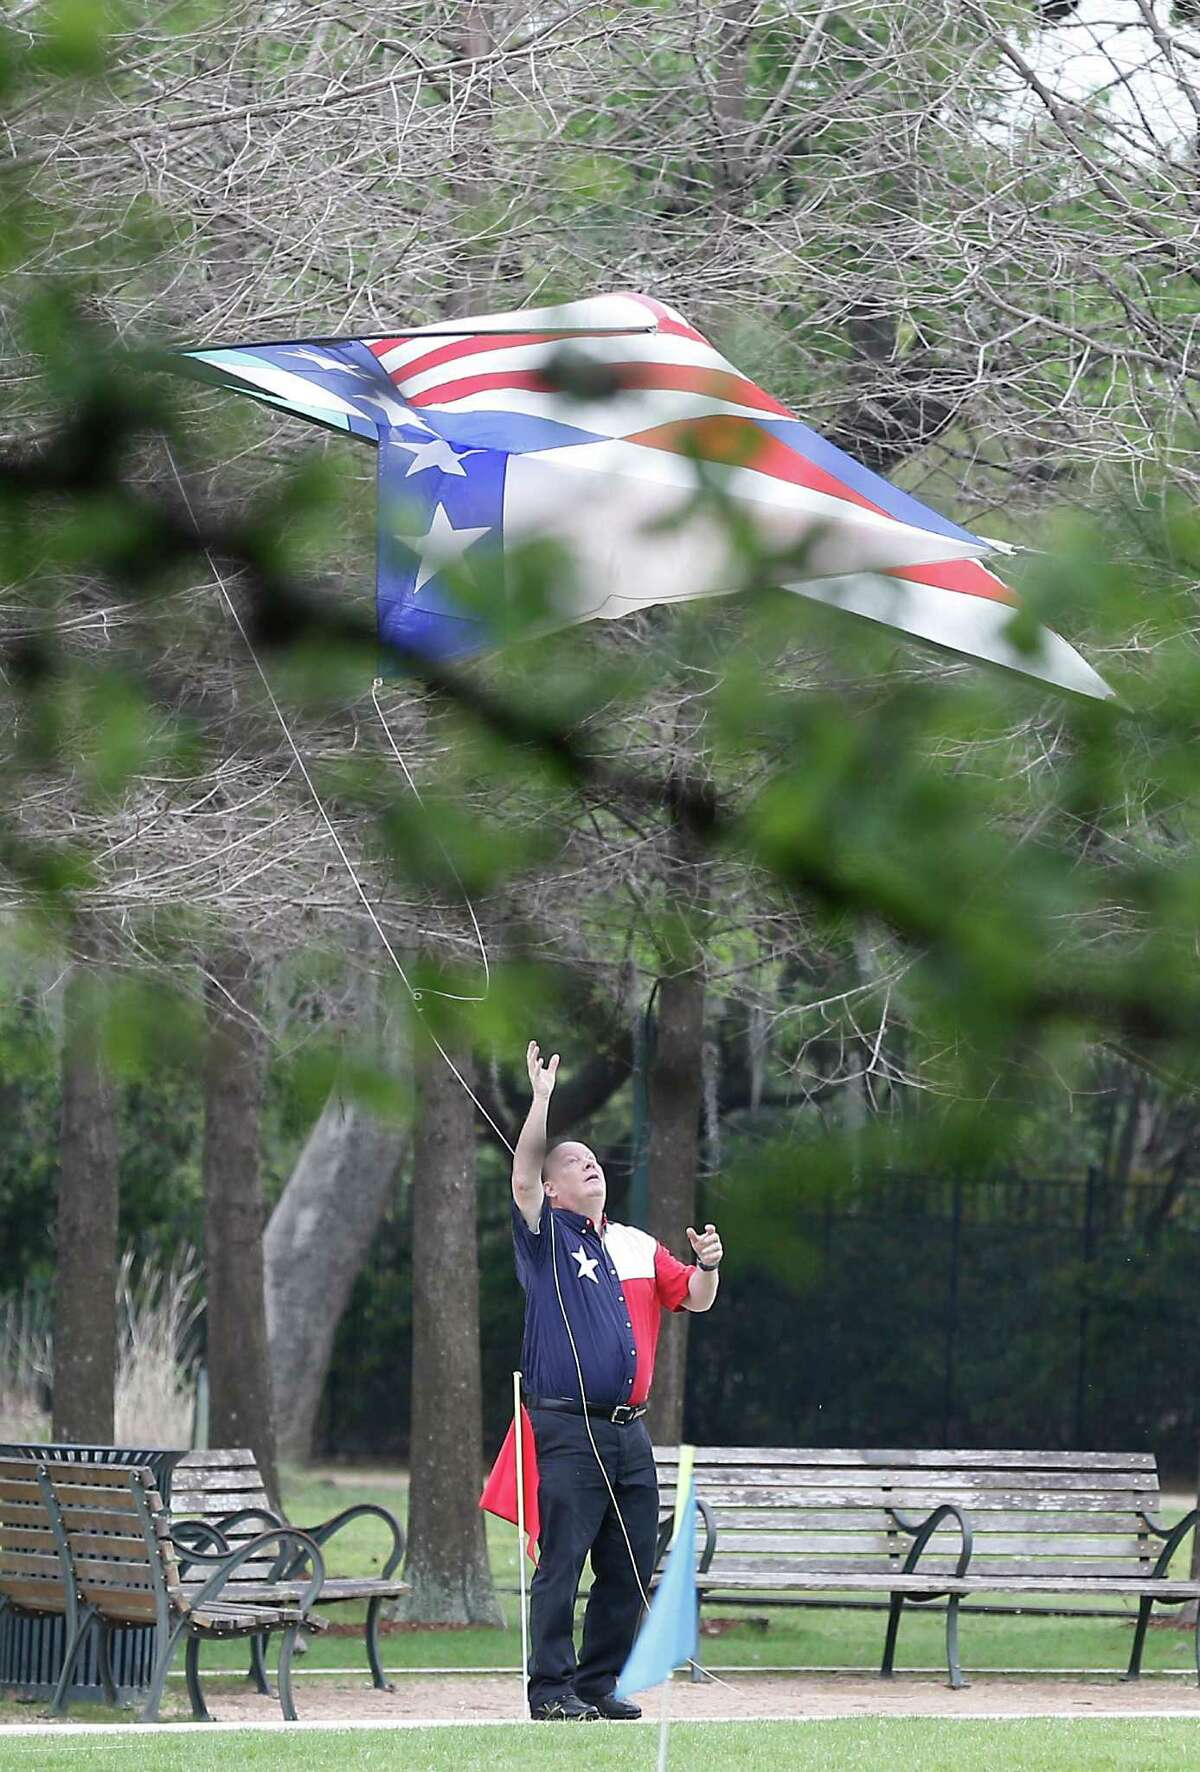 Rick Hawkins, with South Houston Area Recreation Kite Flyers, flies a giant Texas kite at Hermann Park in preparation for the third annual Kite Festival scheduled for Sunday.